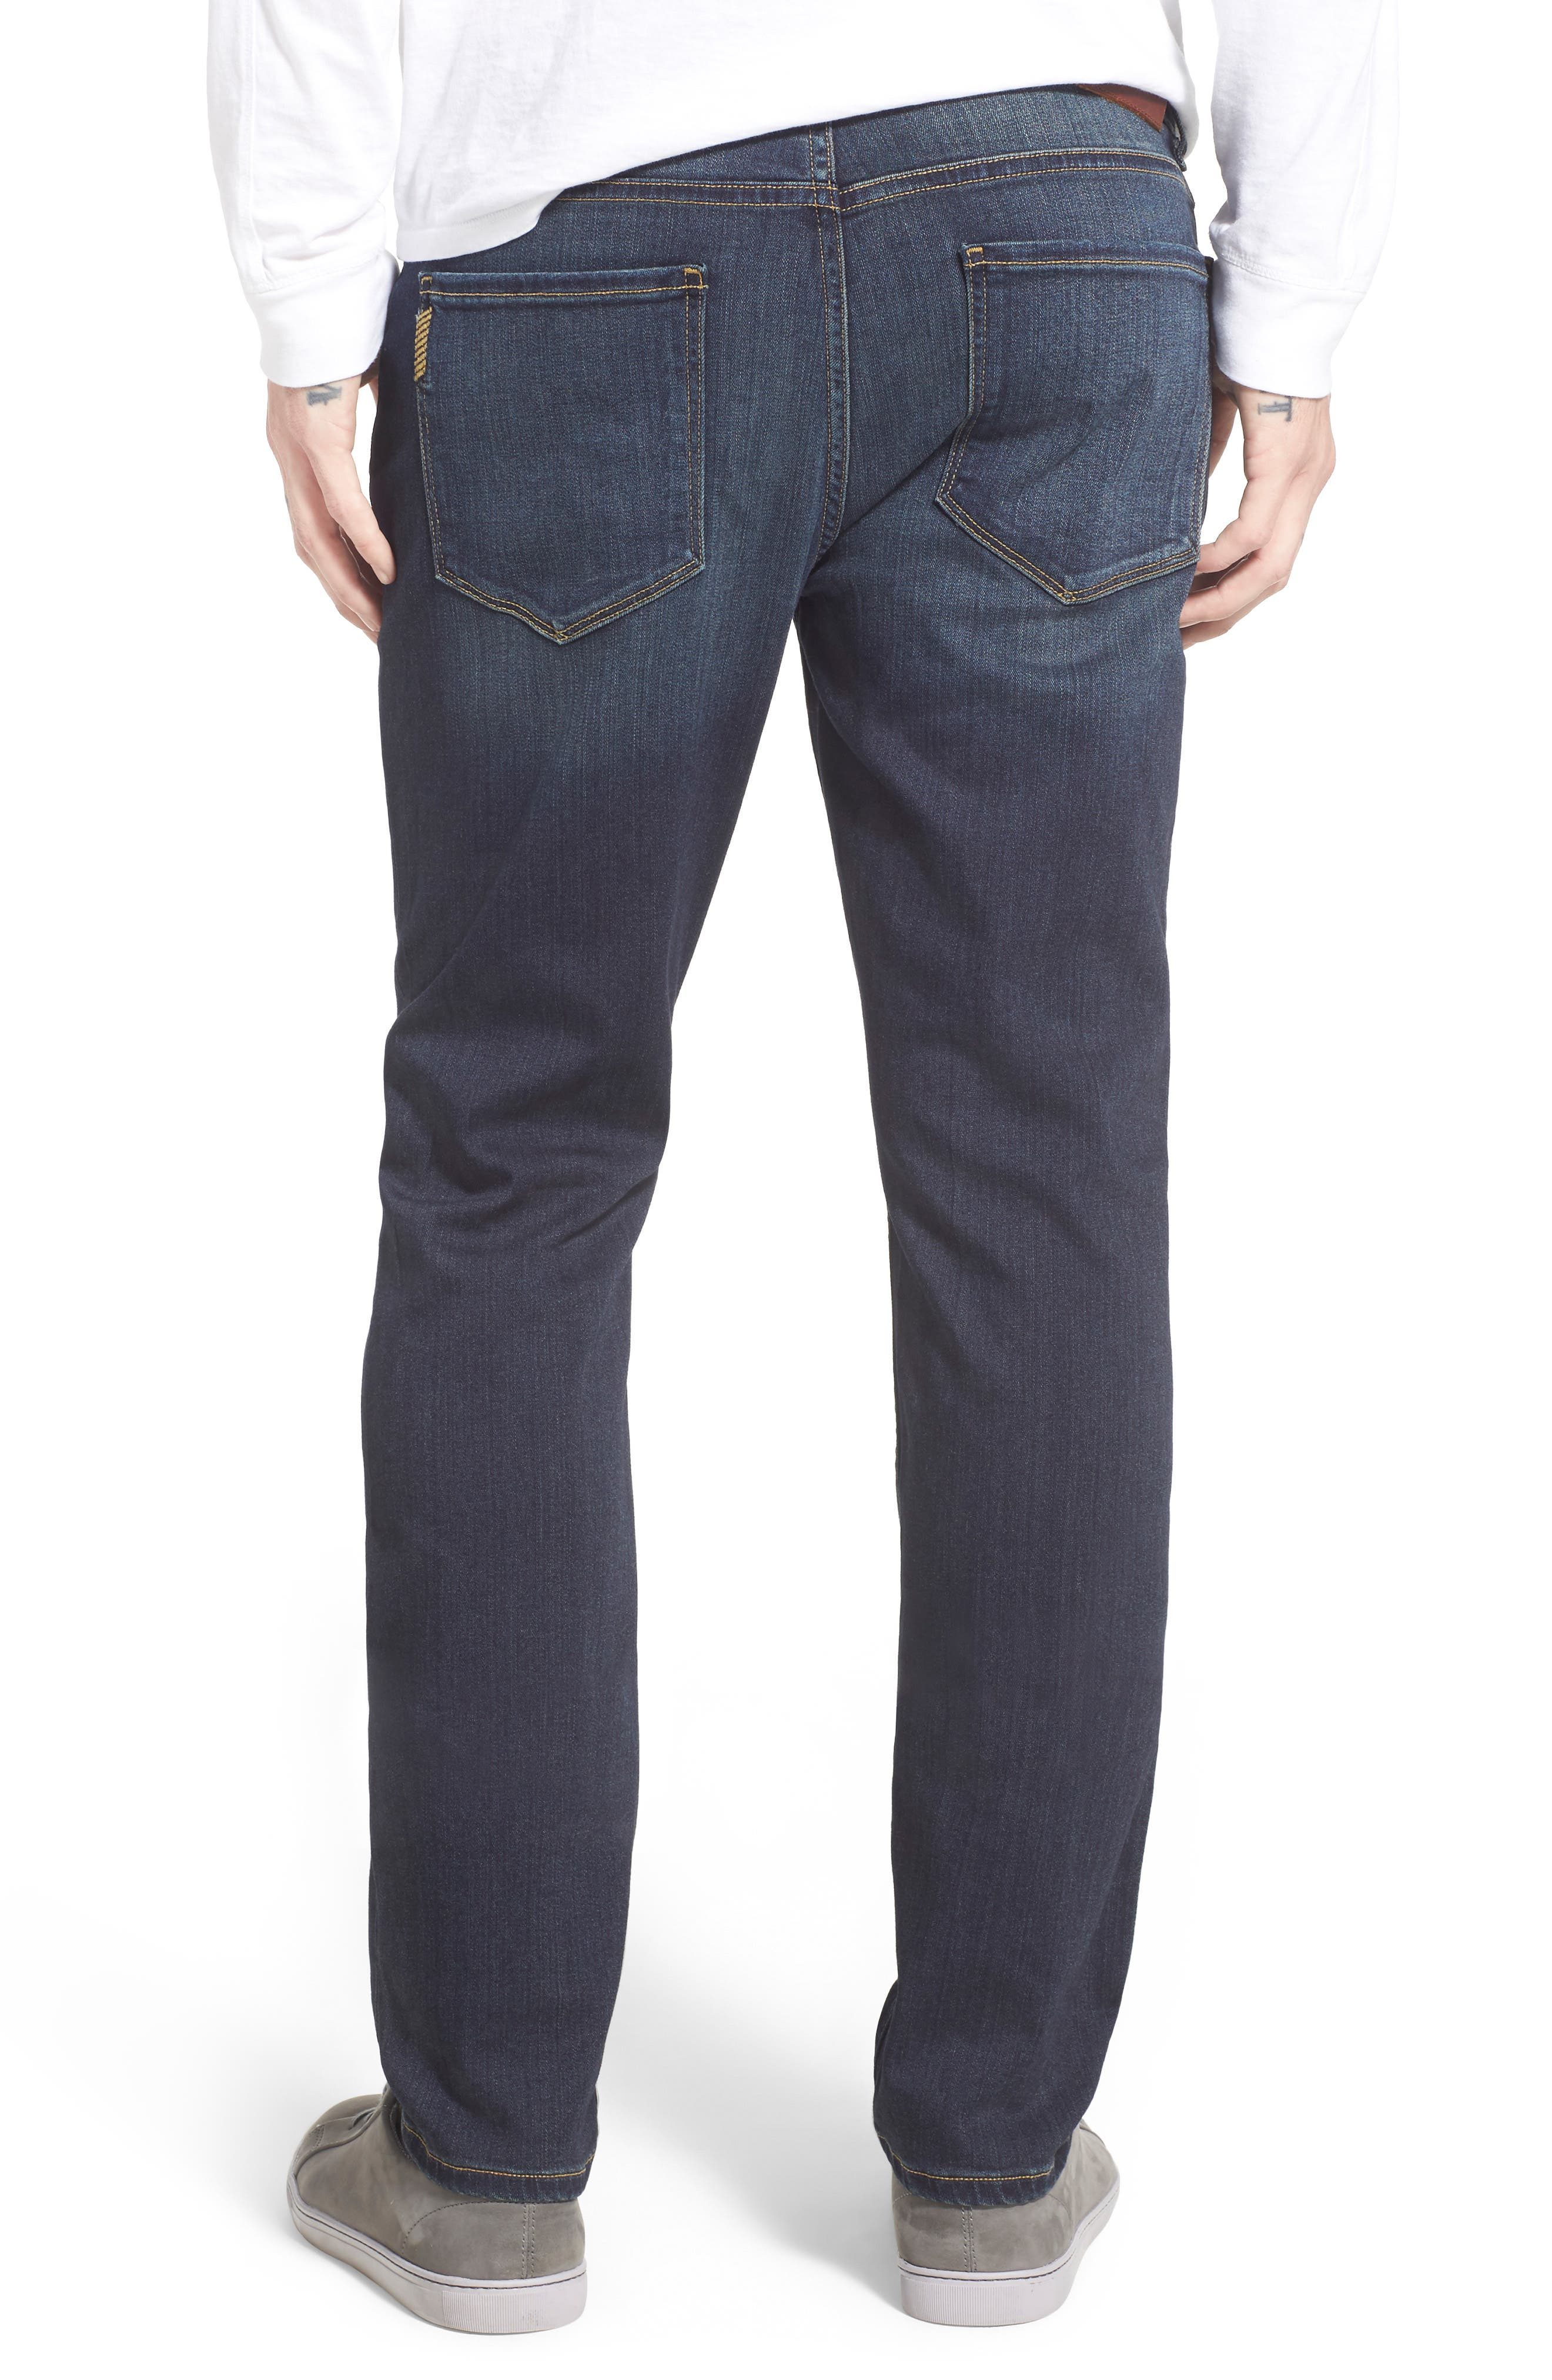 Lennox Slim Fit Jeans,                             Alternate thumbnail 4, color,                             RIGBY